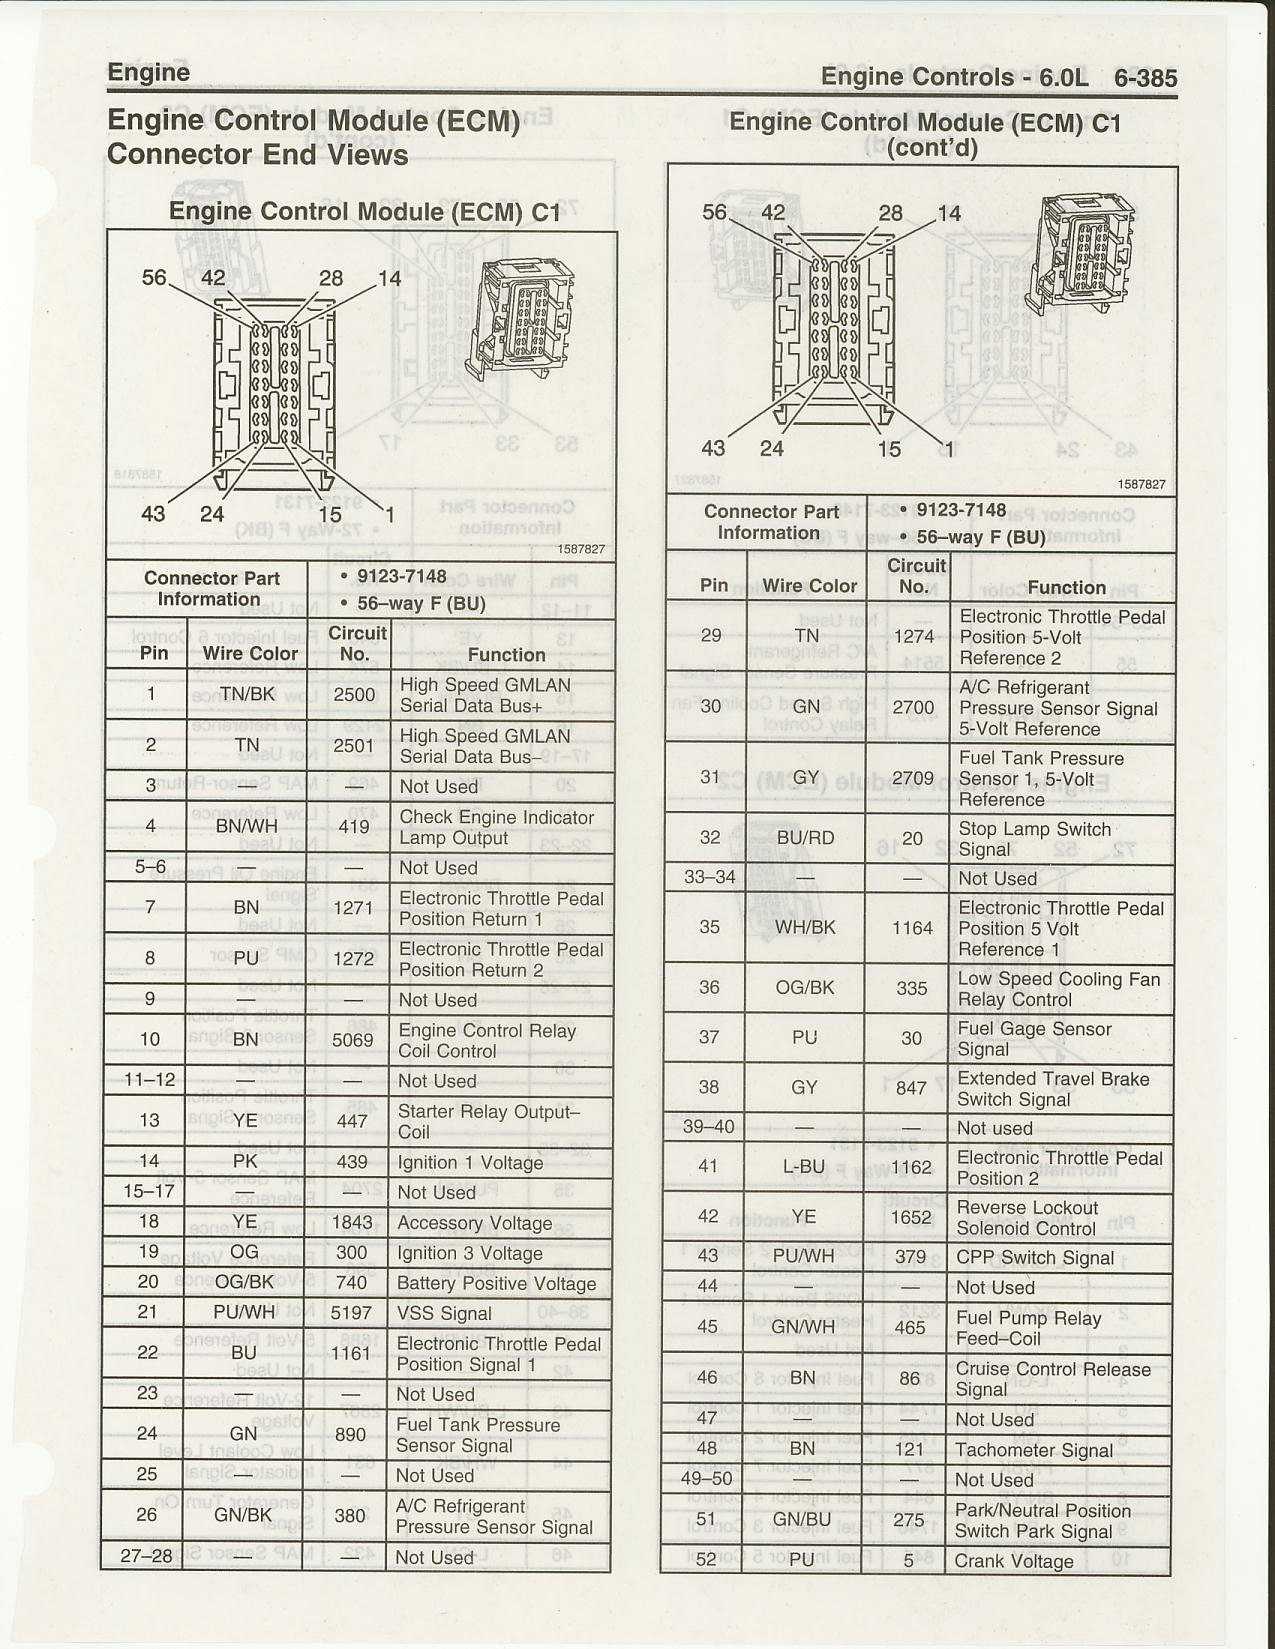 Pinouts And Wiring Diagrams Page 4 Ls1tech Camaro Firebird 2006 Gmc Sierra 3500 Diagram Ls2 C1